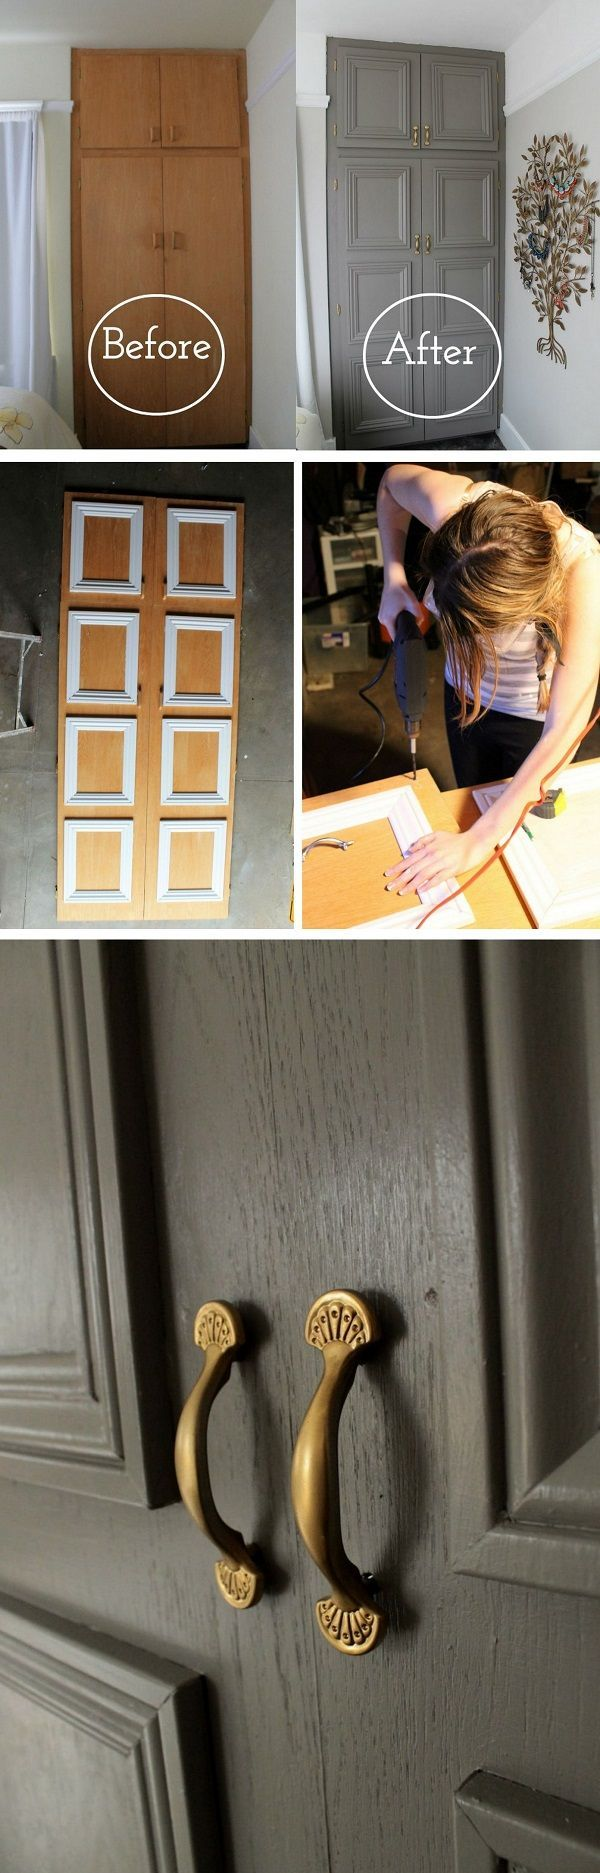 Check out the tutorial how to make a DIY closet door makeover @istandarddesign